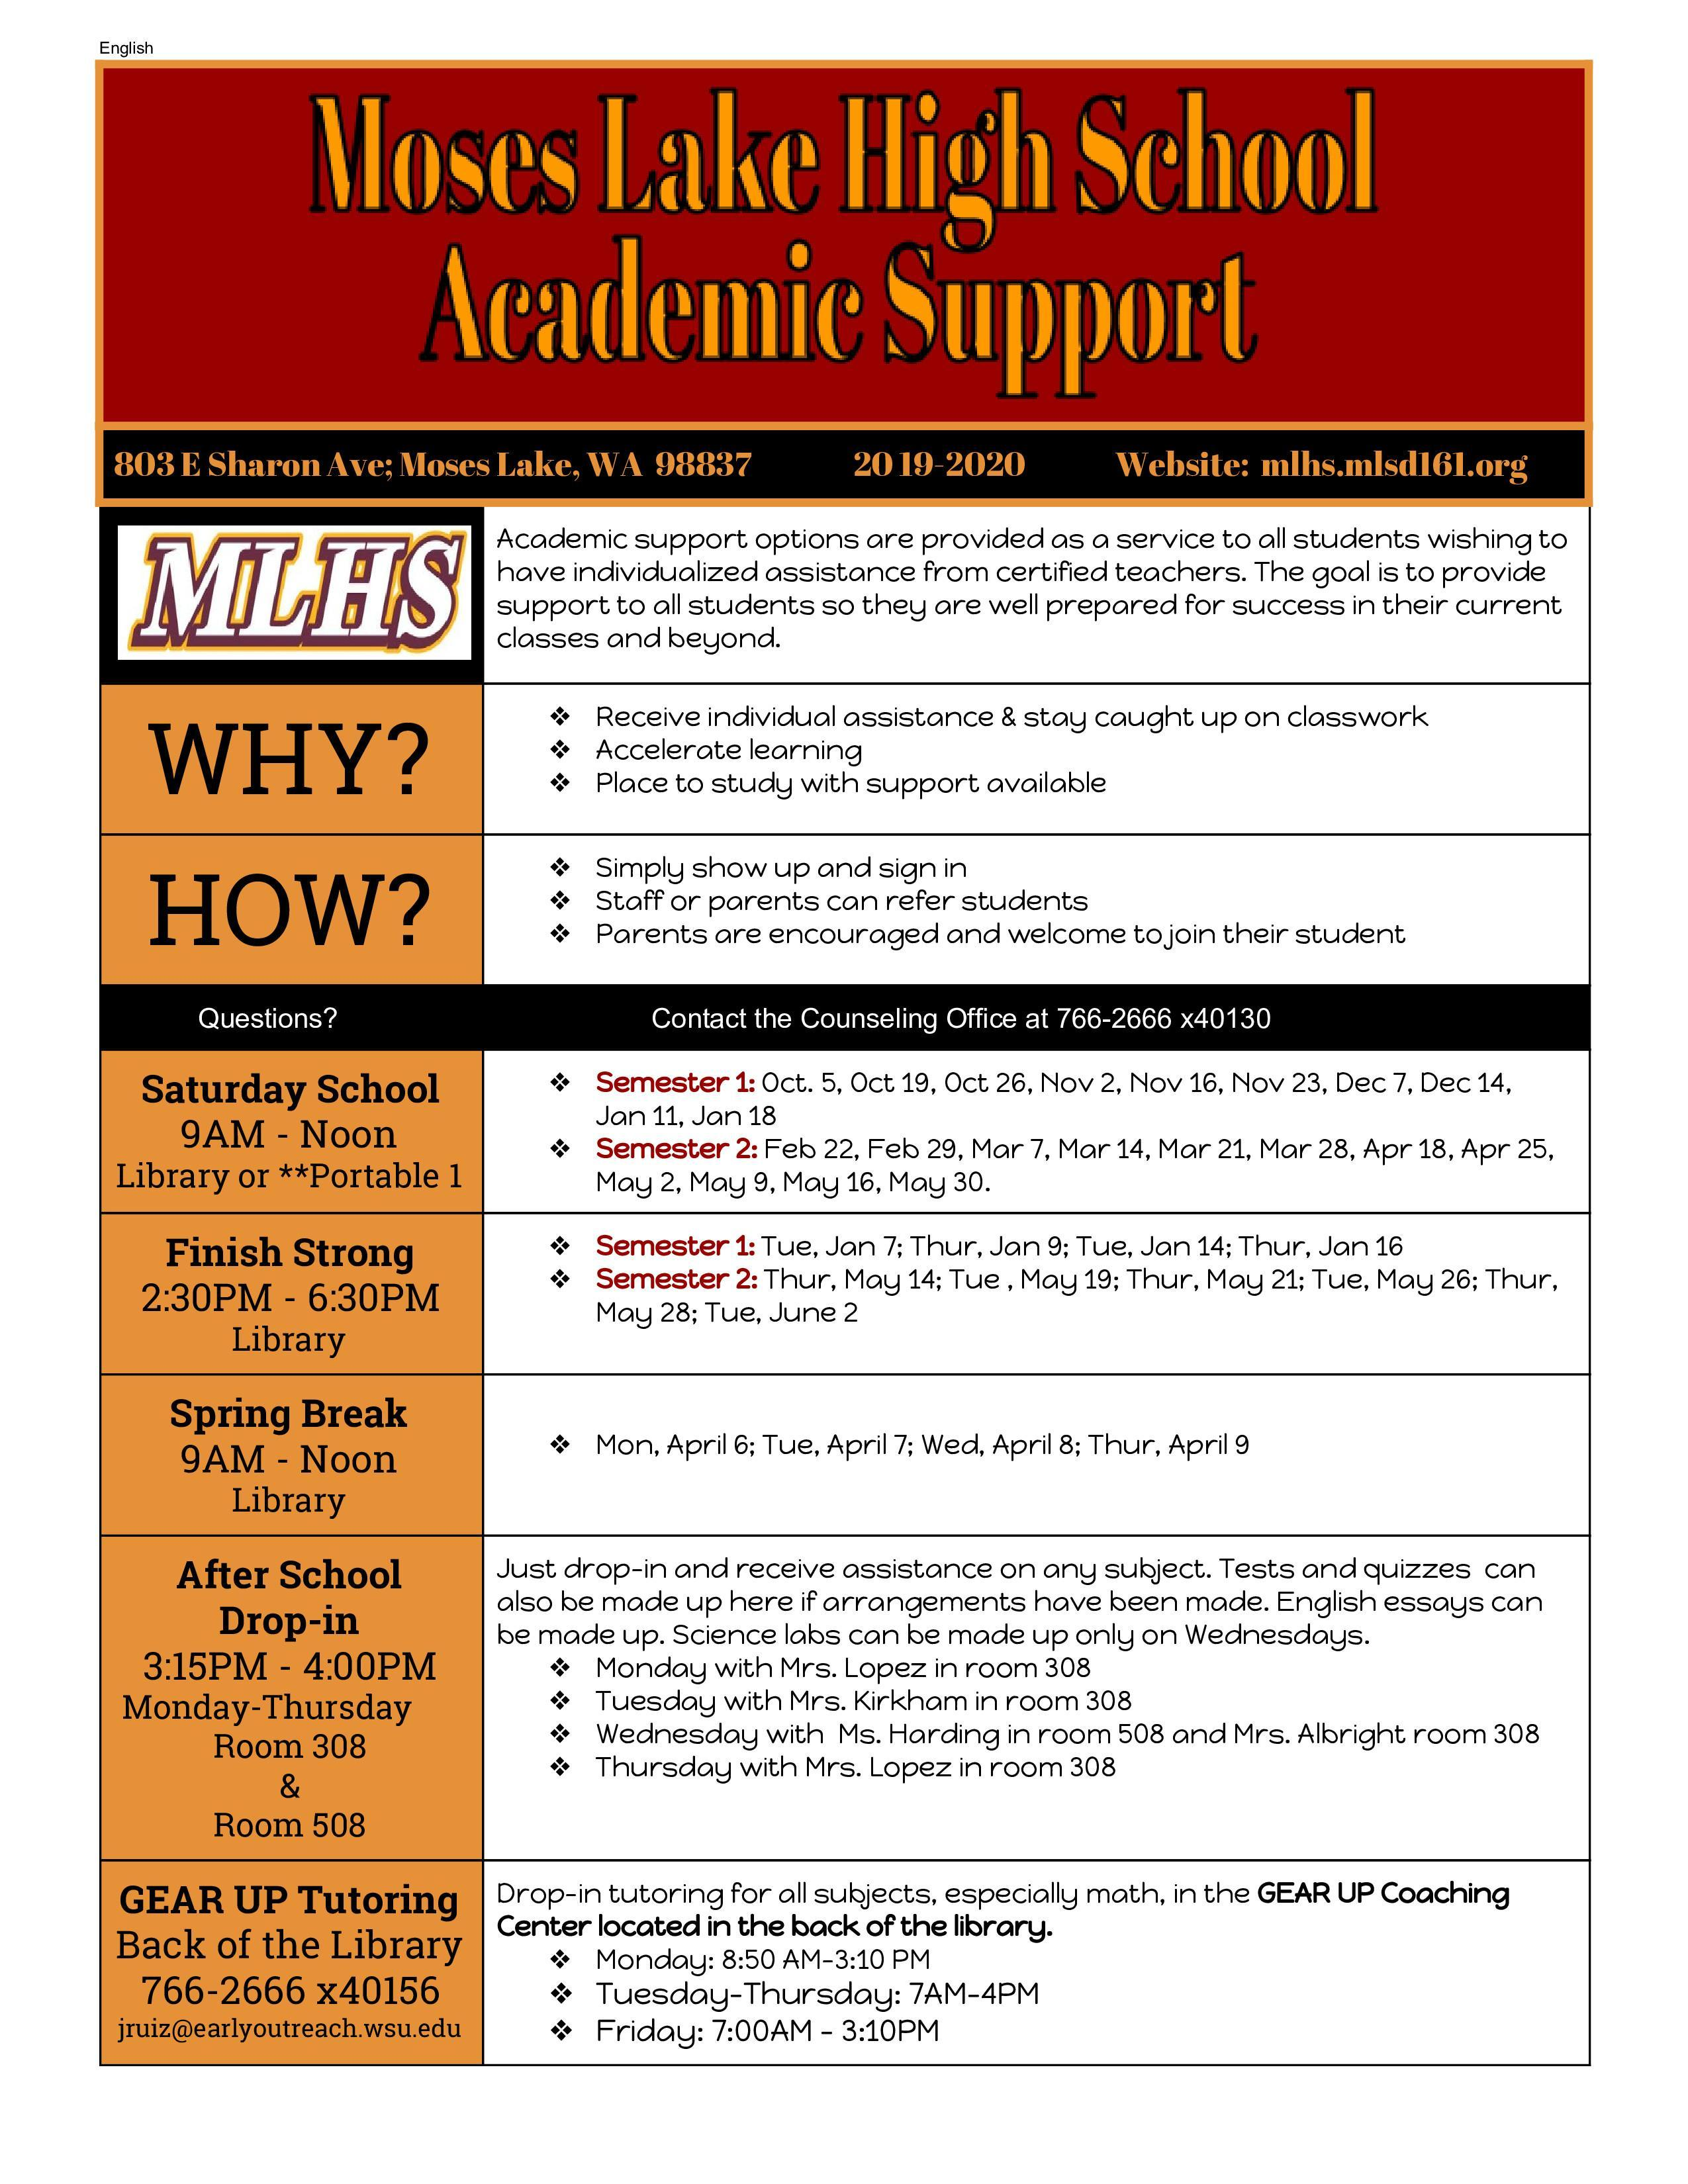 Academic Support Schedule for the 19/20 School Year at MLHS